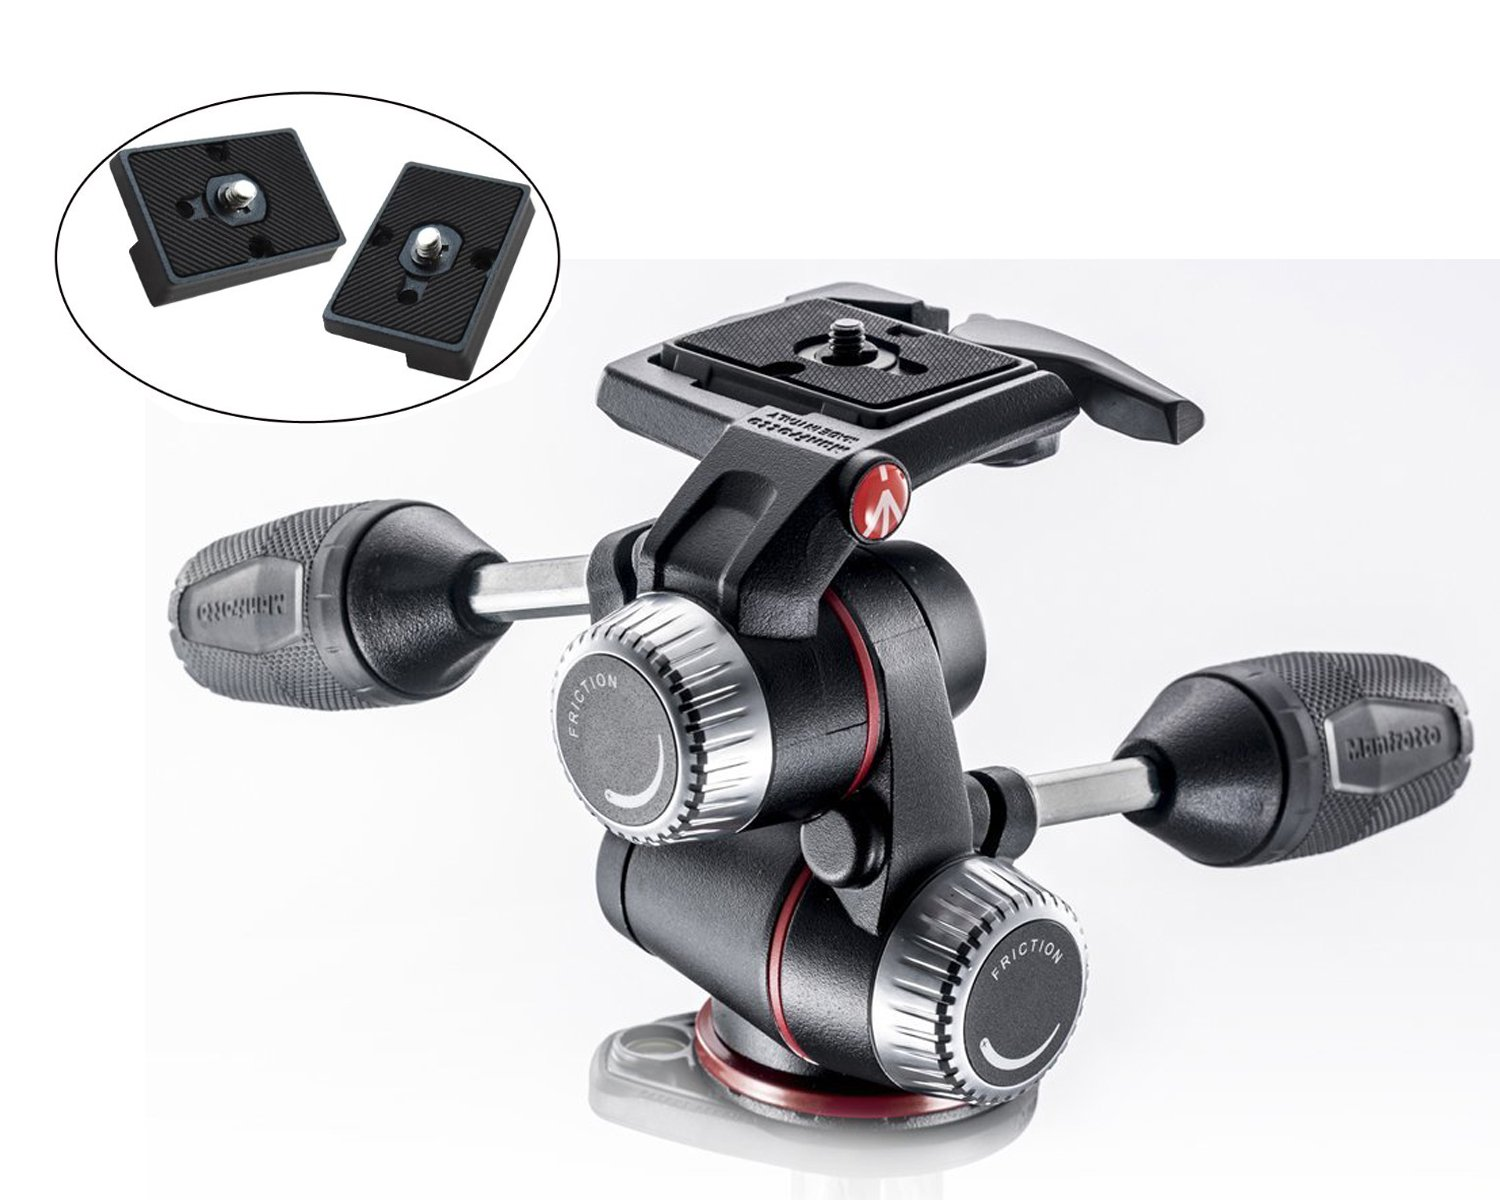 Manfrotto MHXPRO-3W X-PRO 3-Way Head with Retractable Levers and Friction Controls Includes Two ZAYKiR Quick Release Plates